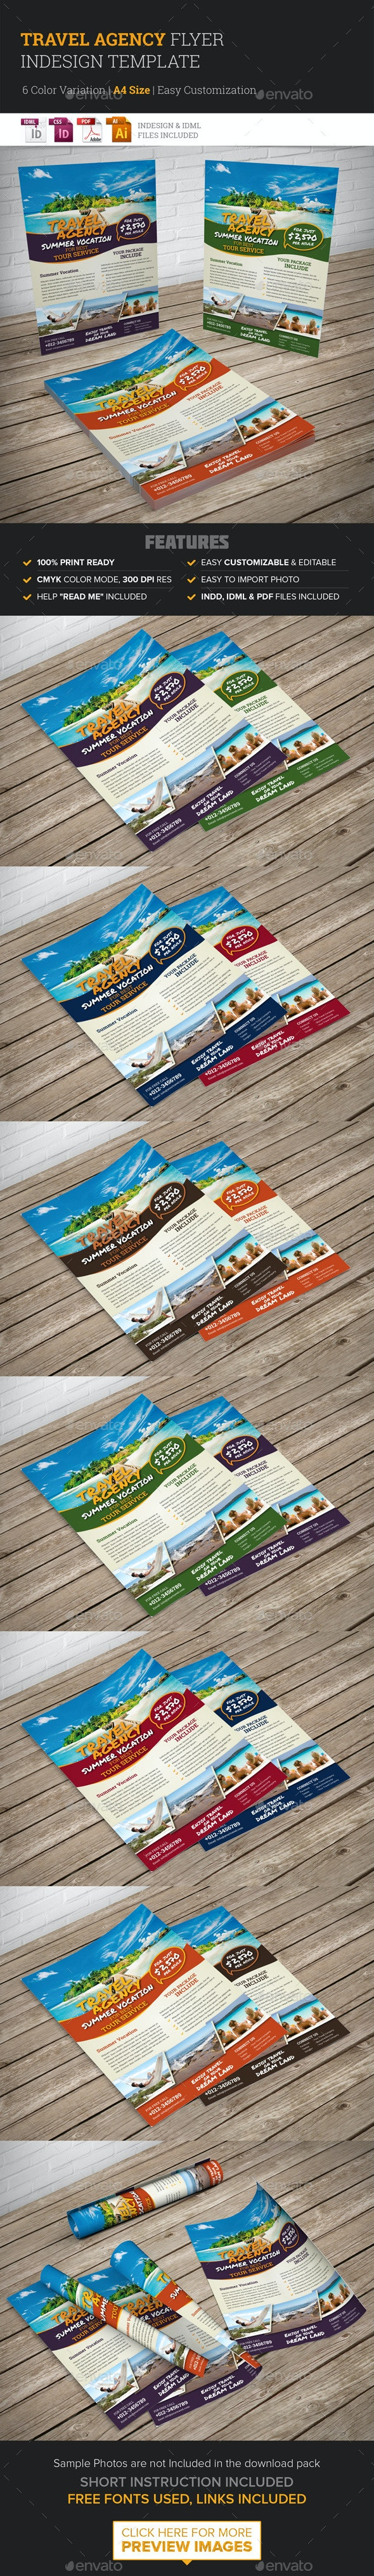 Travel Agency Flyer Indesign Template - Corporate Flyers